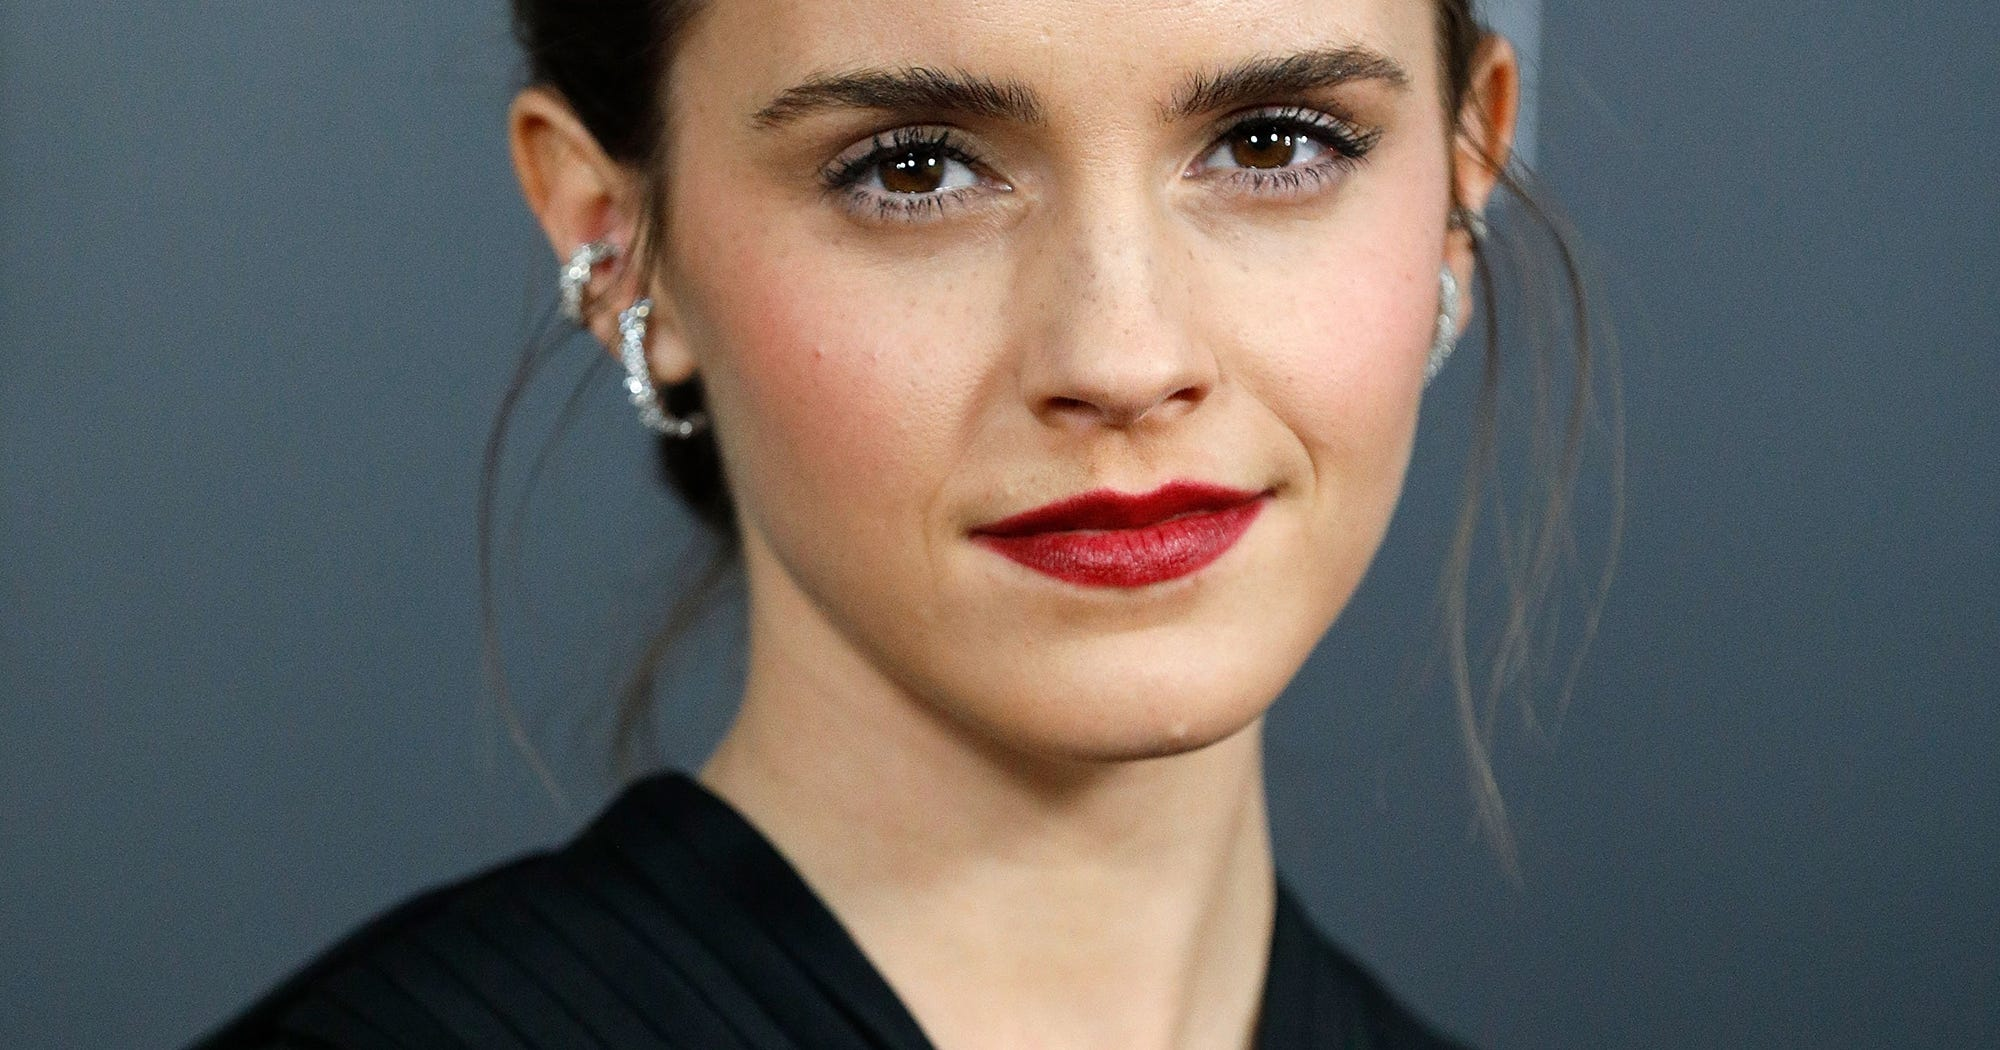 Emma Watson on Gender Equality and the Struggles of Activism: Transcript